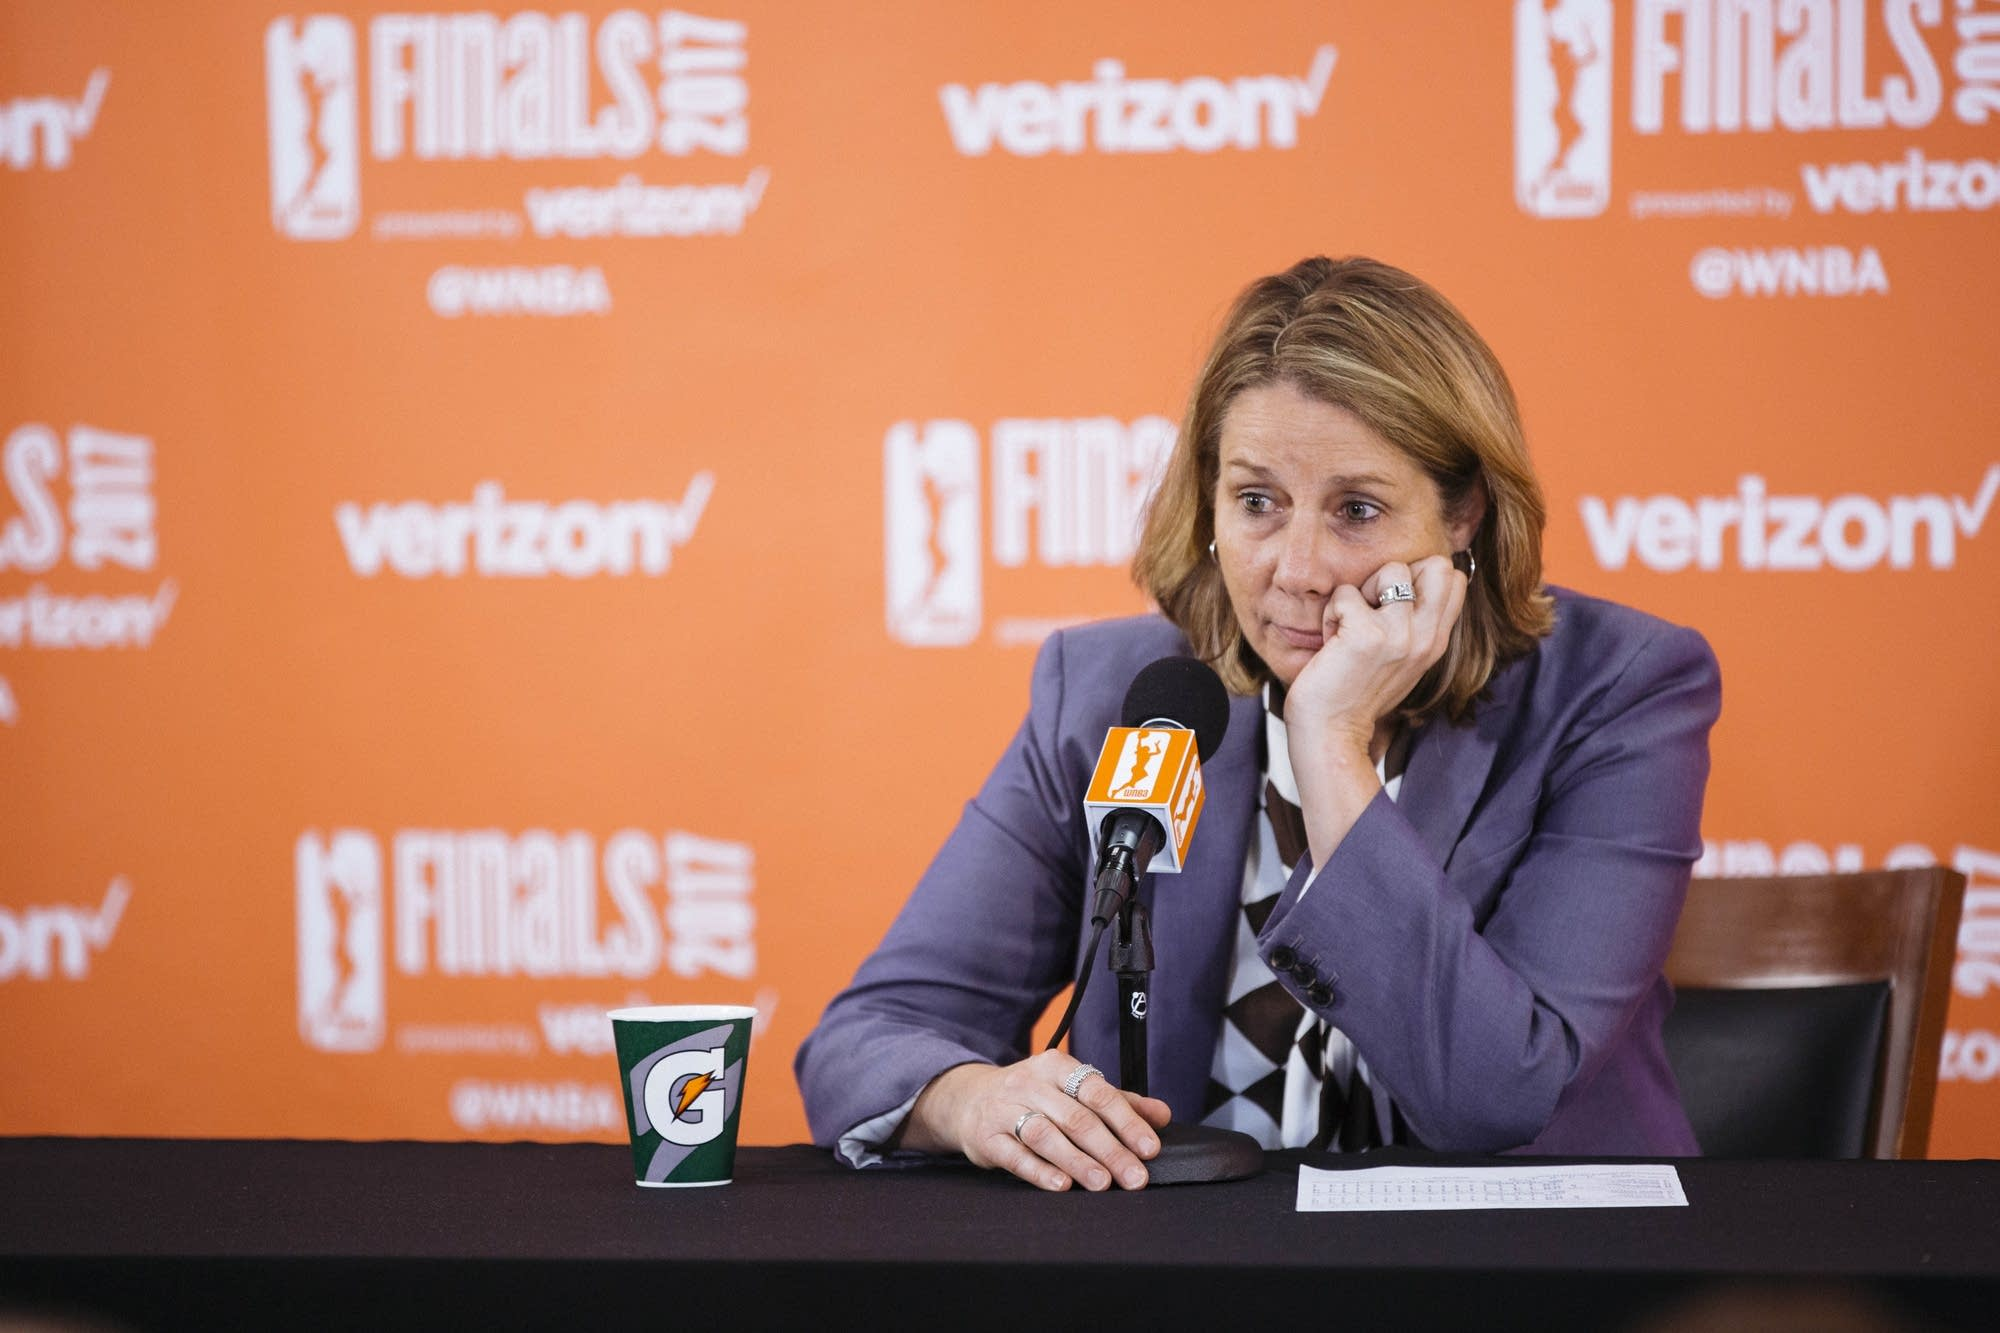 Minnesota Lynx coach Cheryl Reeve speaks after the game.